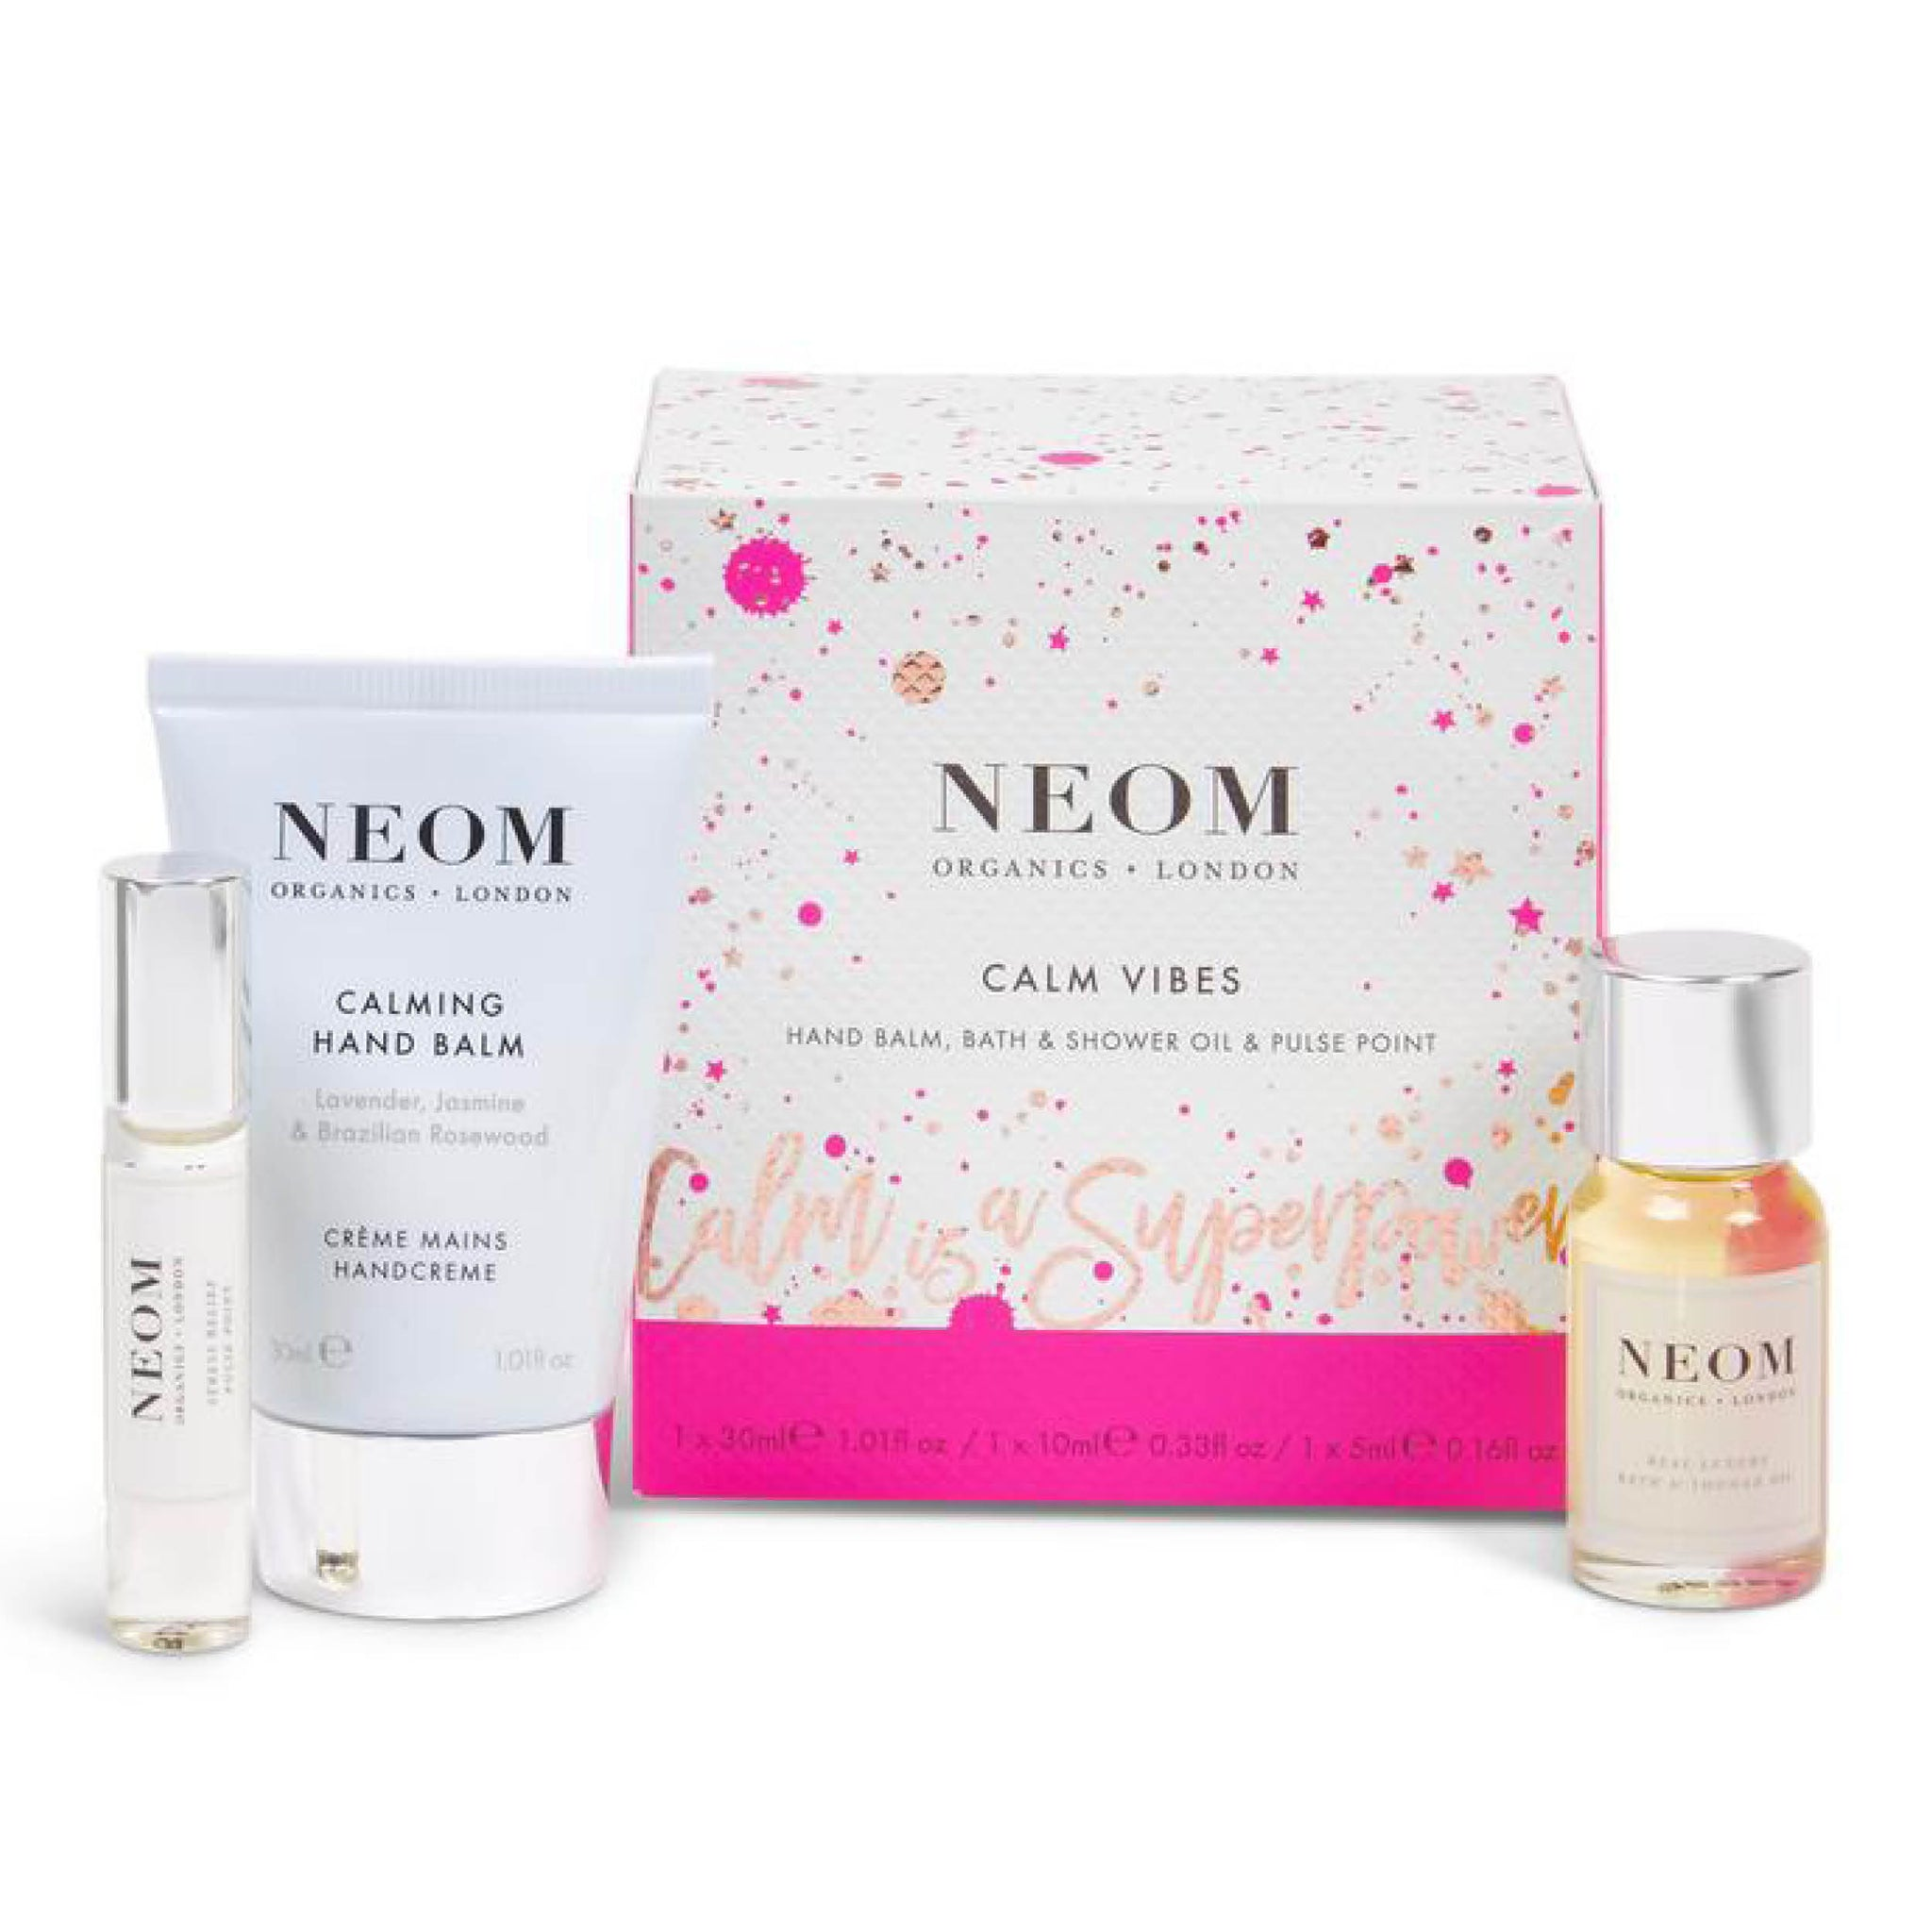 Neom Calm Vibes Gift Sets